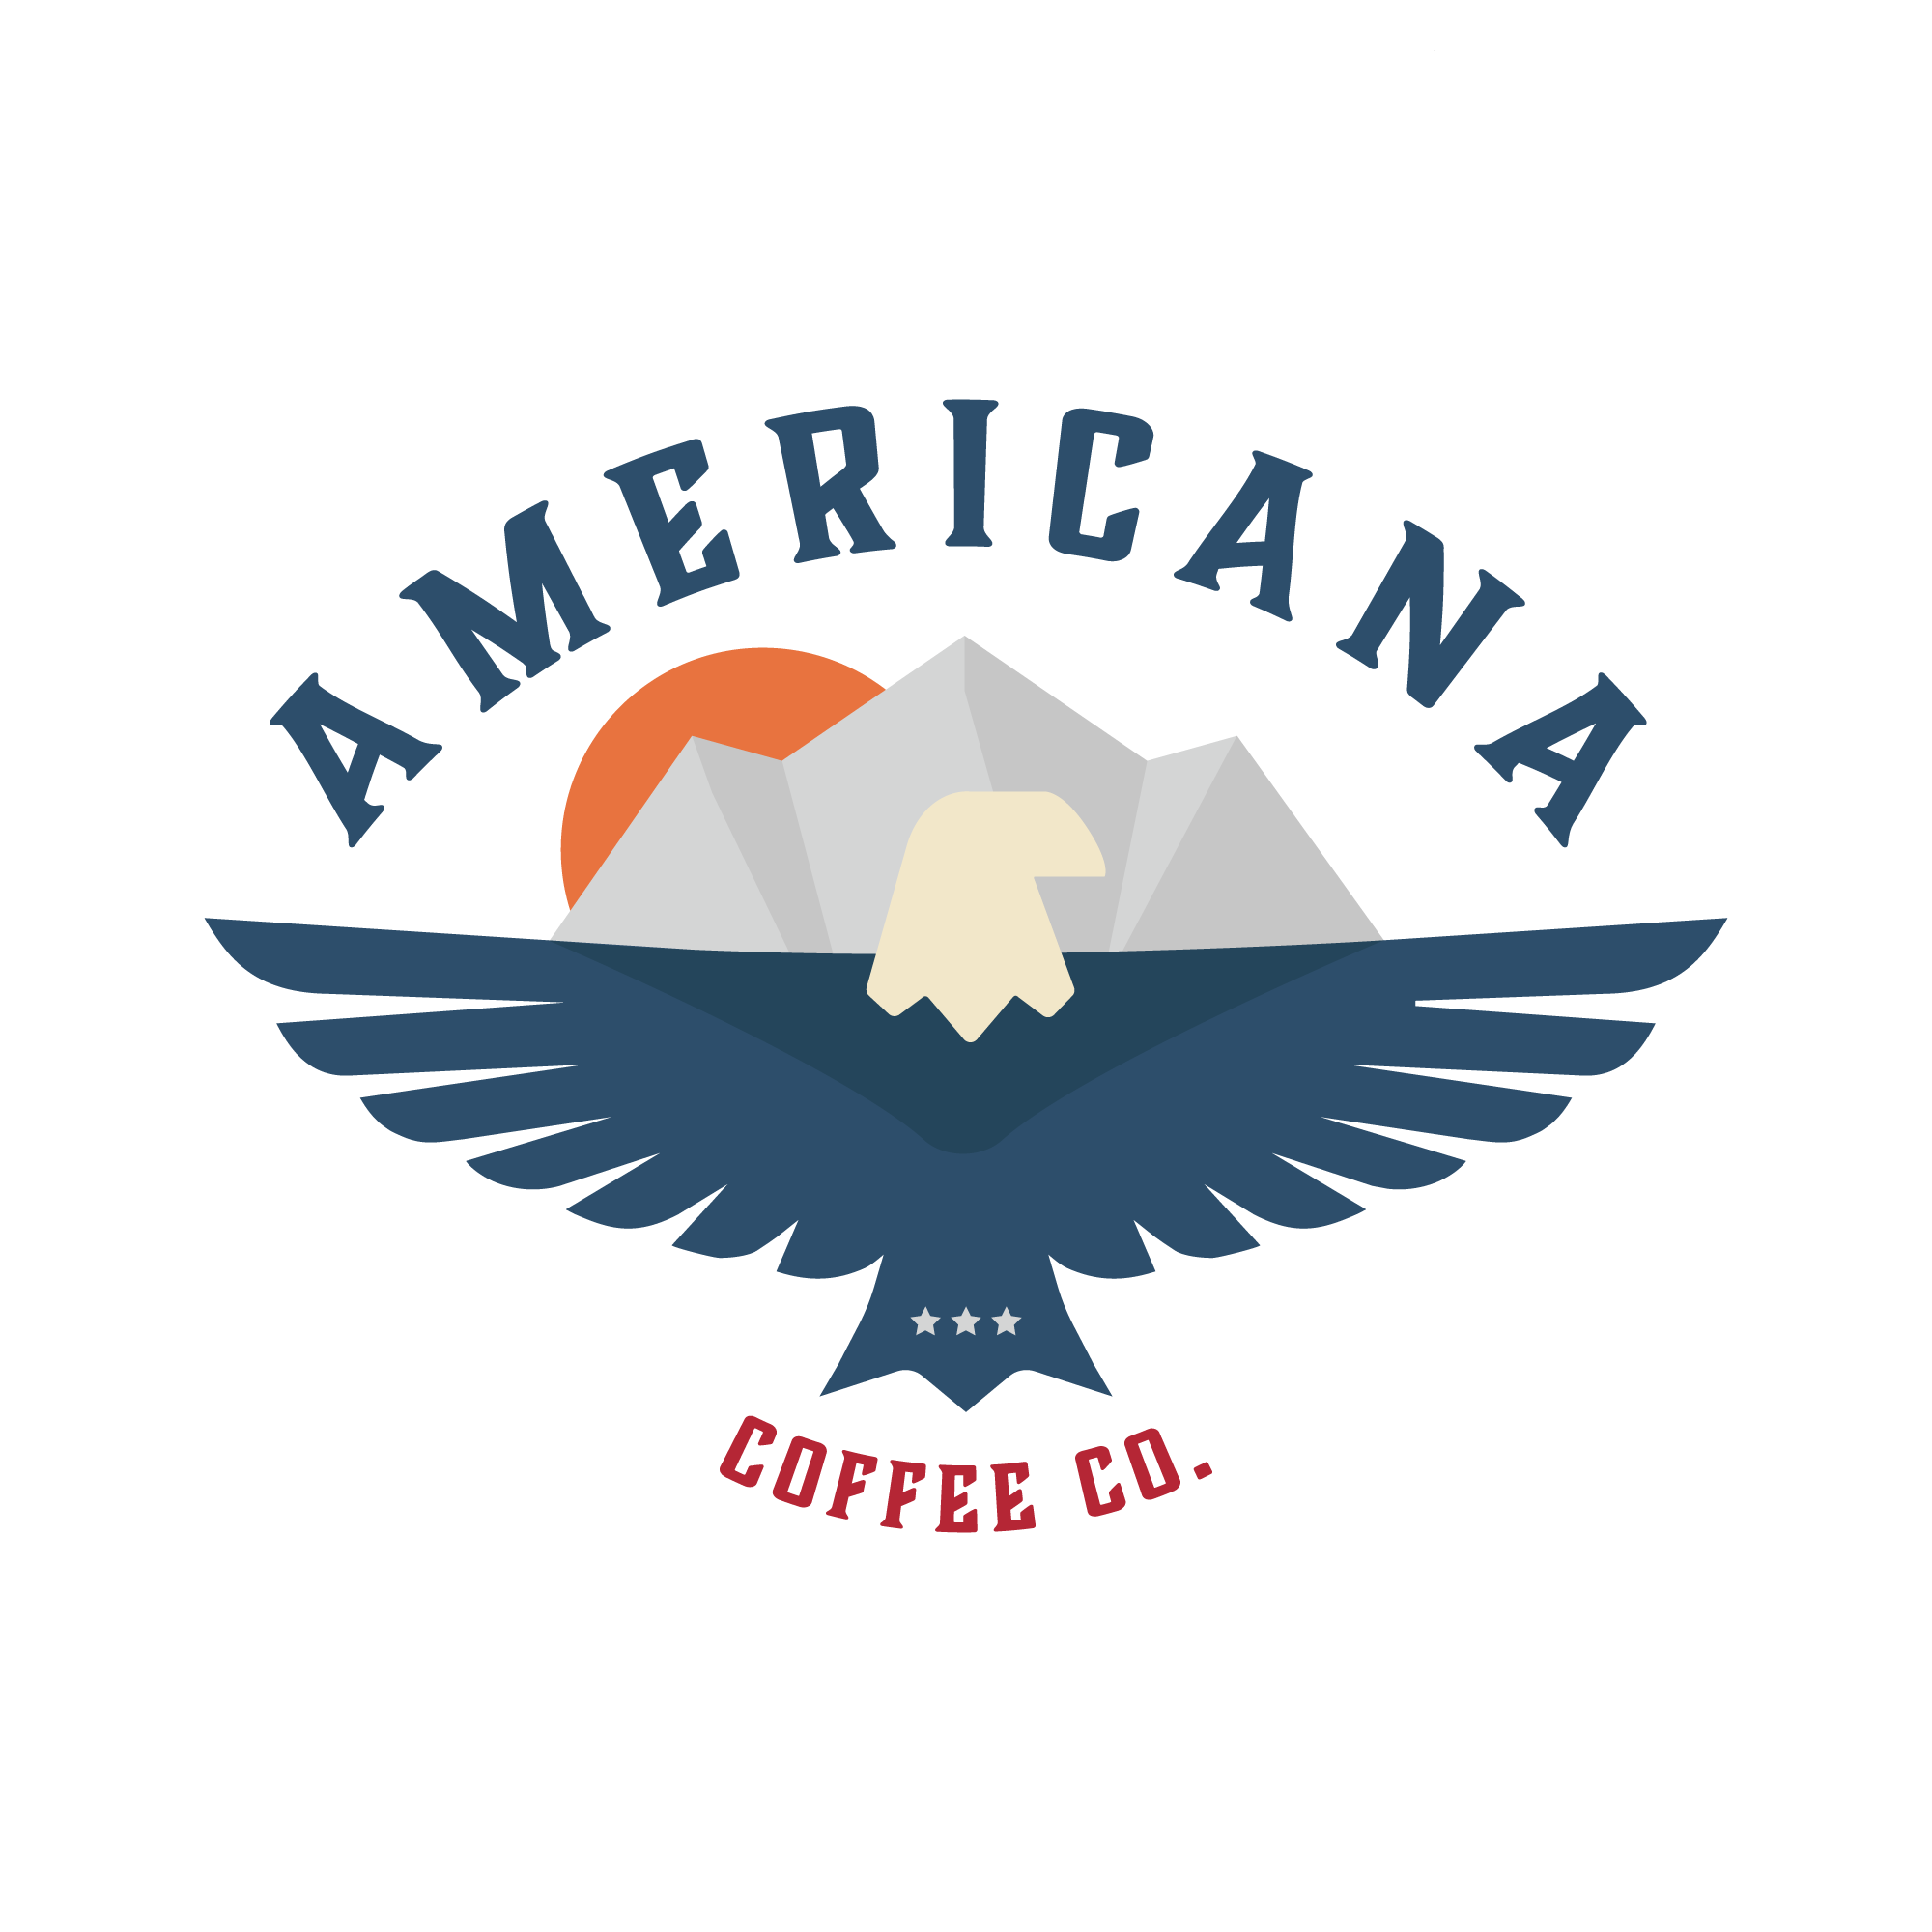 Americana Coffee Co Logo and Branding Design